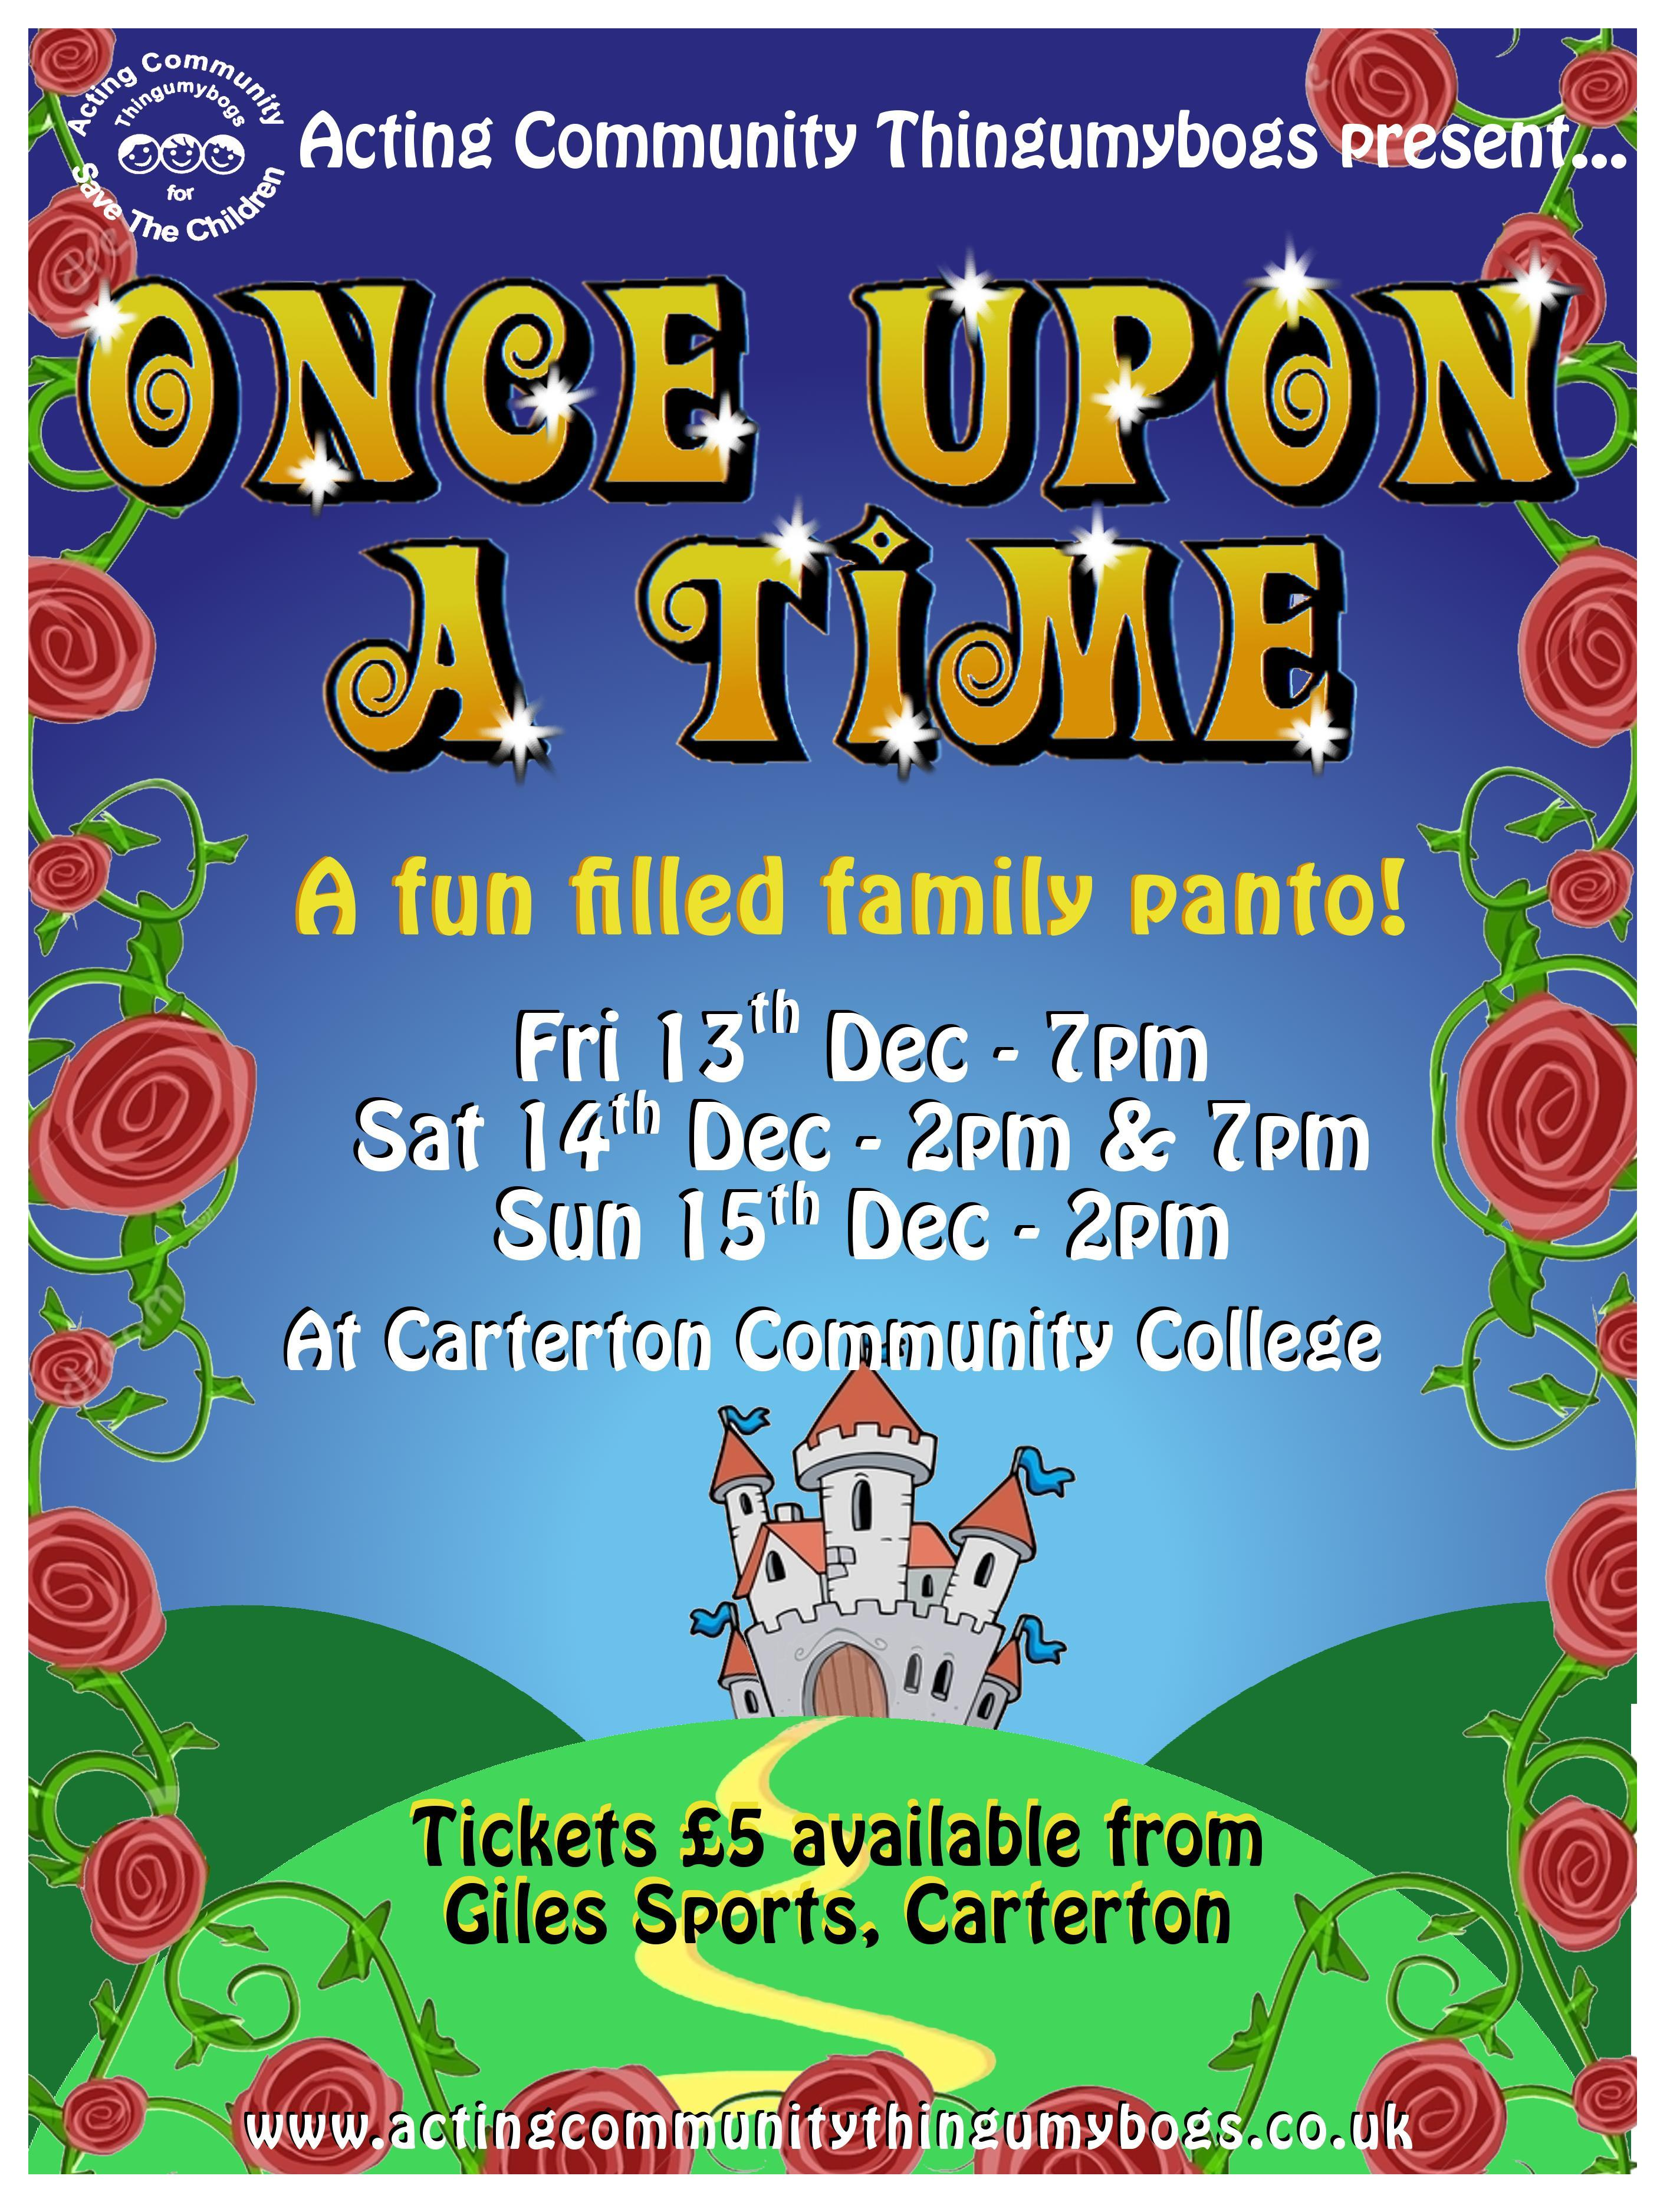 Acting community thingumybogs once upon a time 2013 for Farcical pantomime